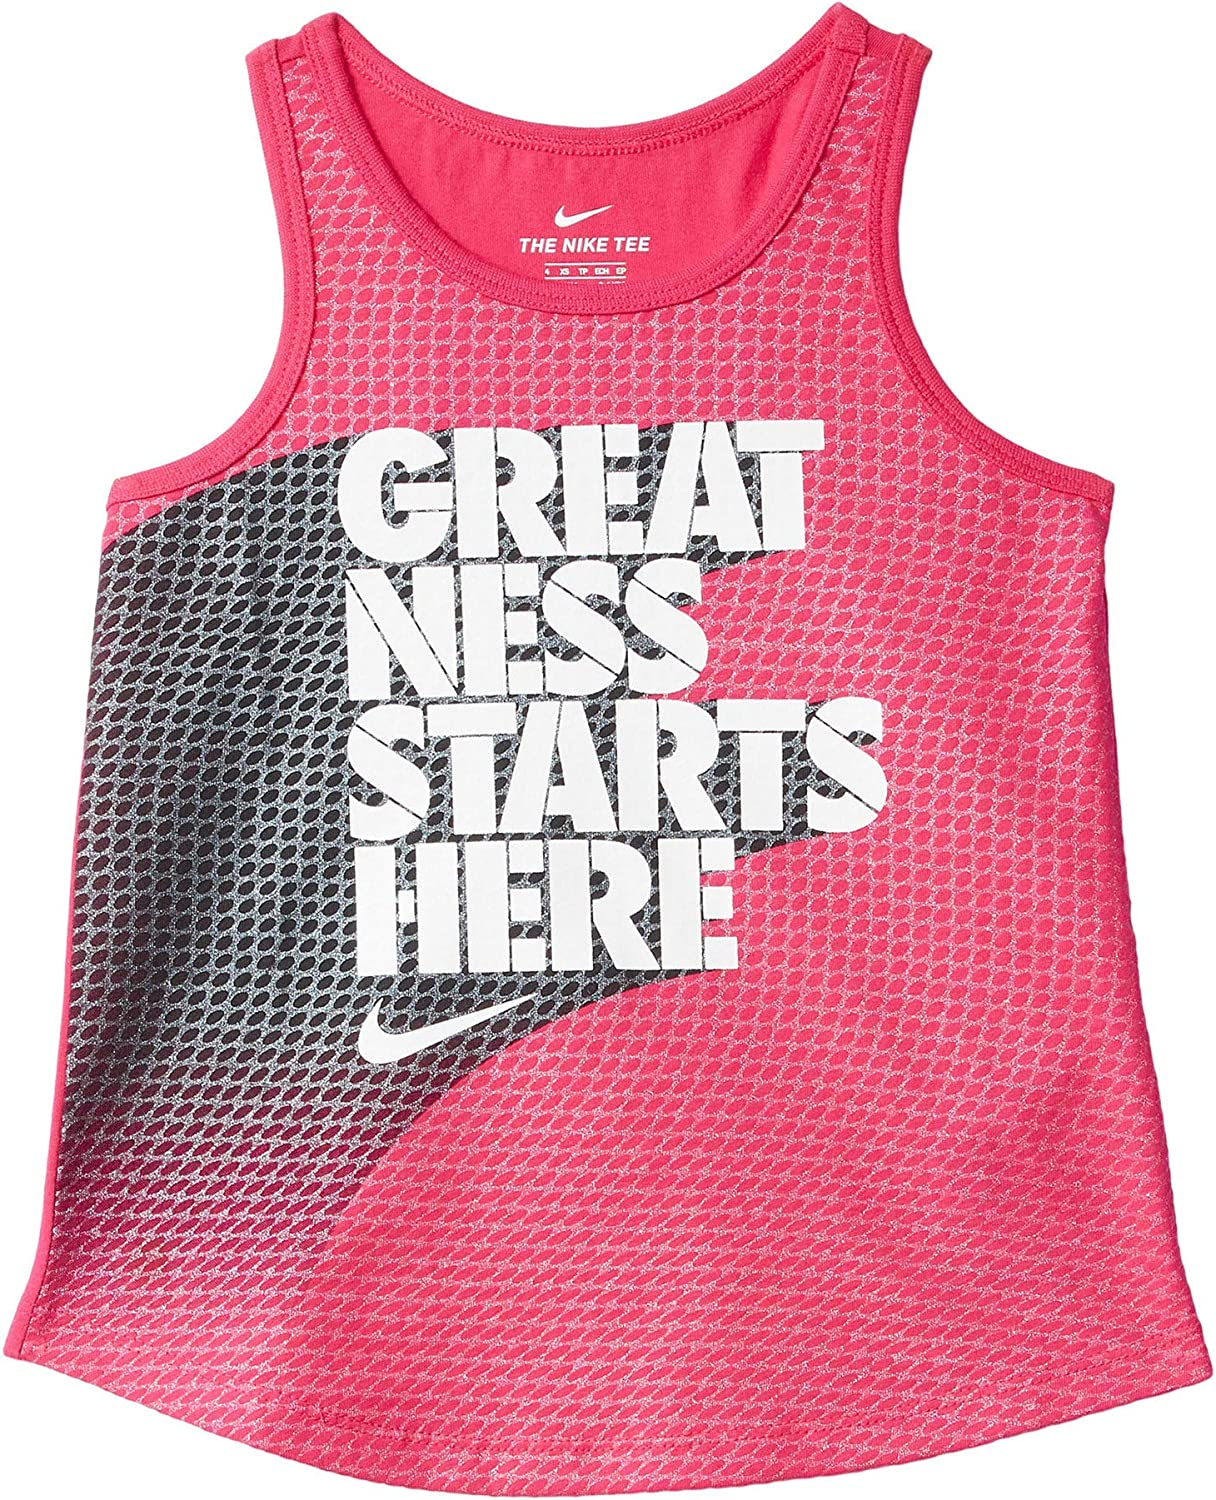 Nike Girl's Greatness Starts Here Graphic Tank Top (Little Kids)